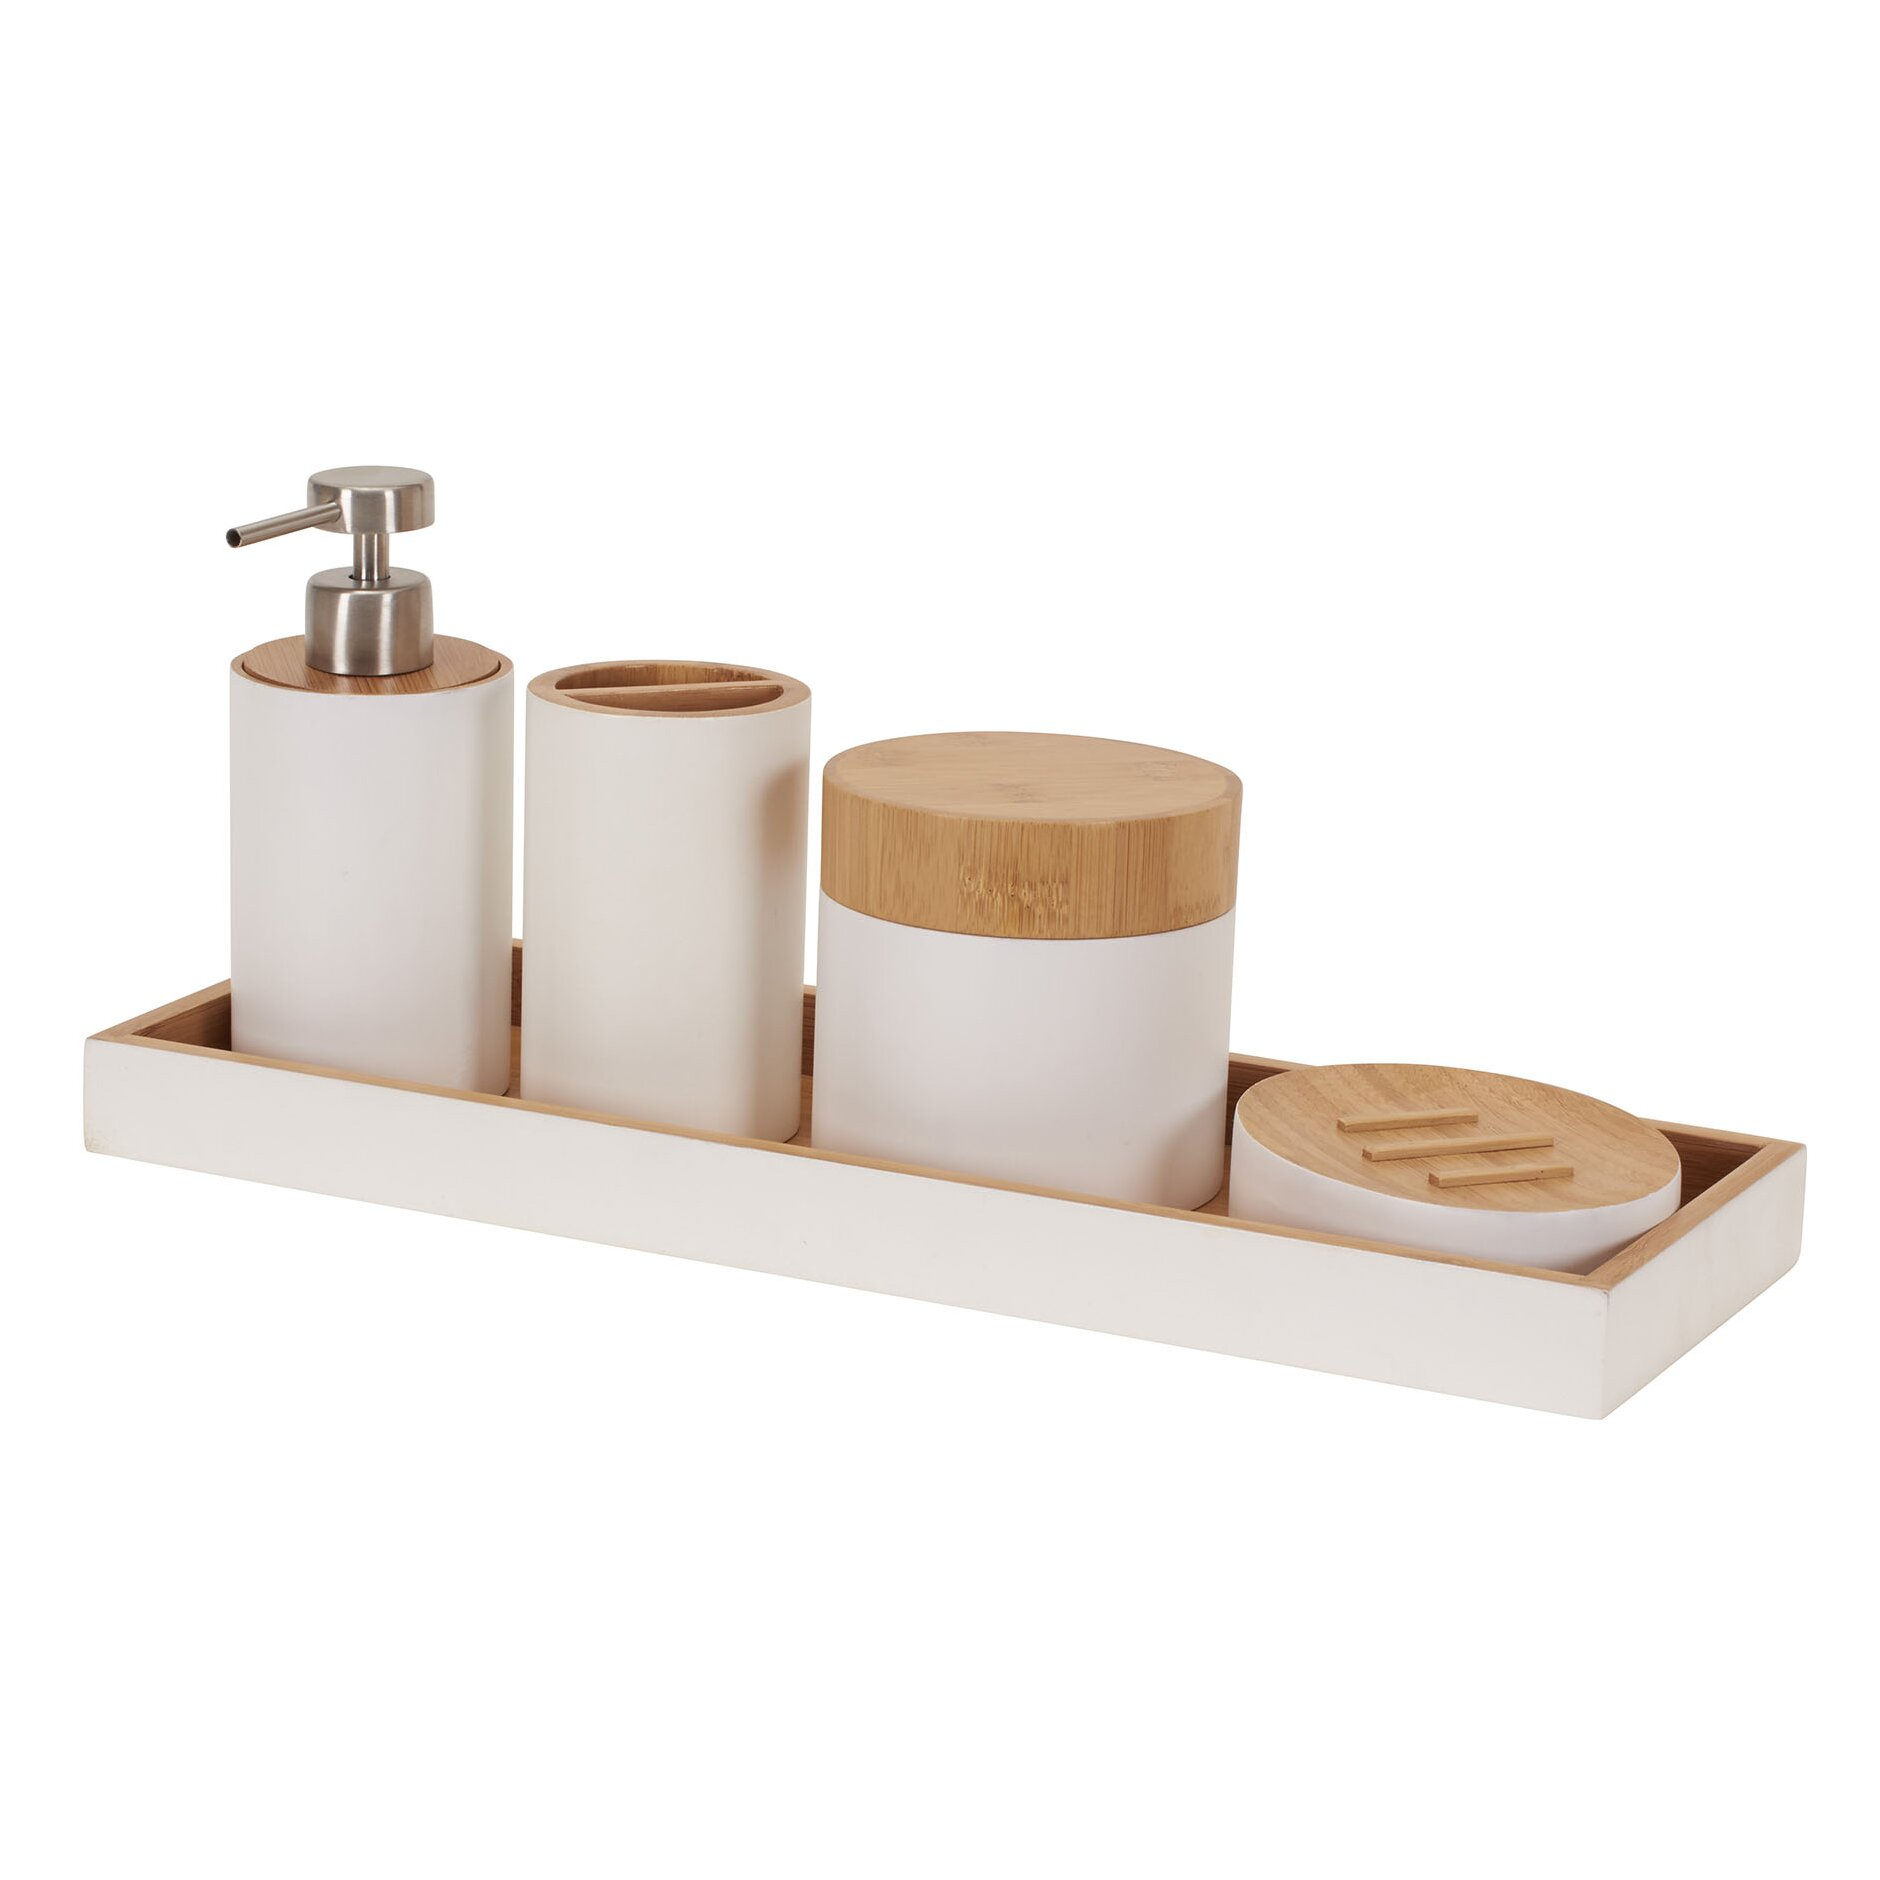 Household essentials elements 6 piece bamboo bathroom set for Bathroom essentials set